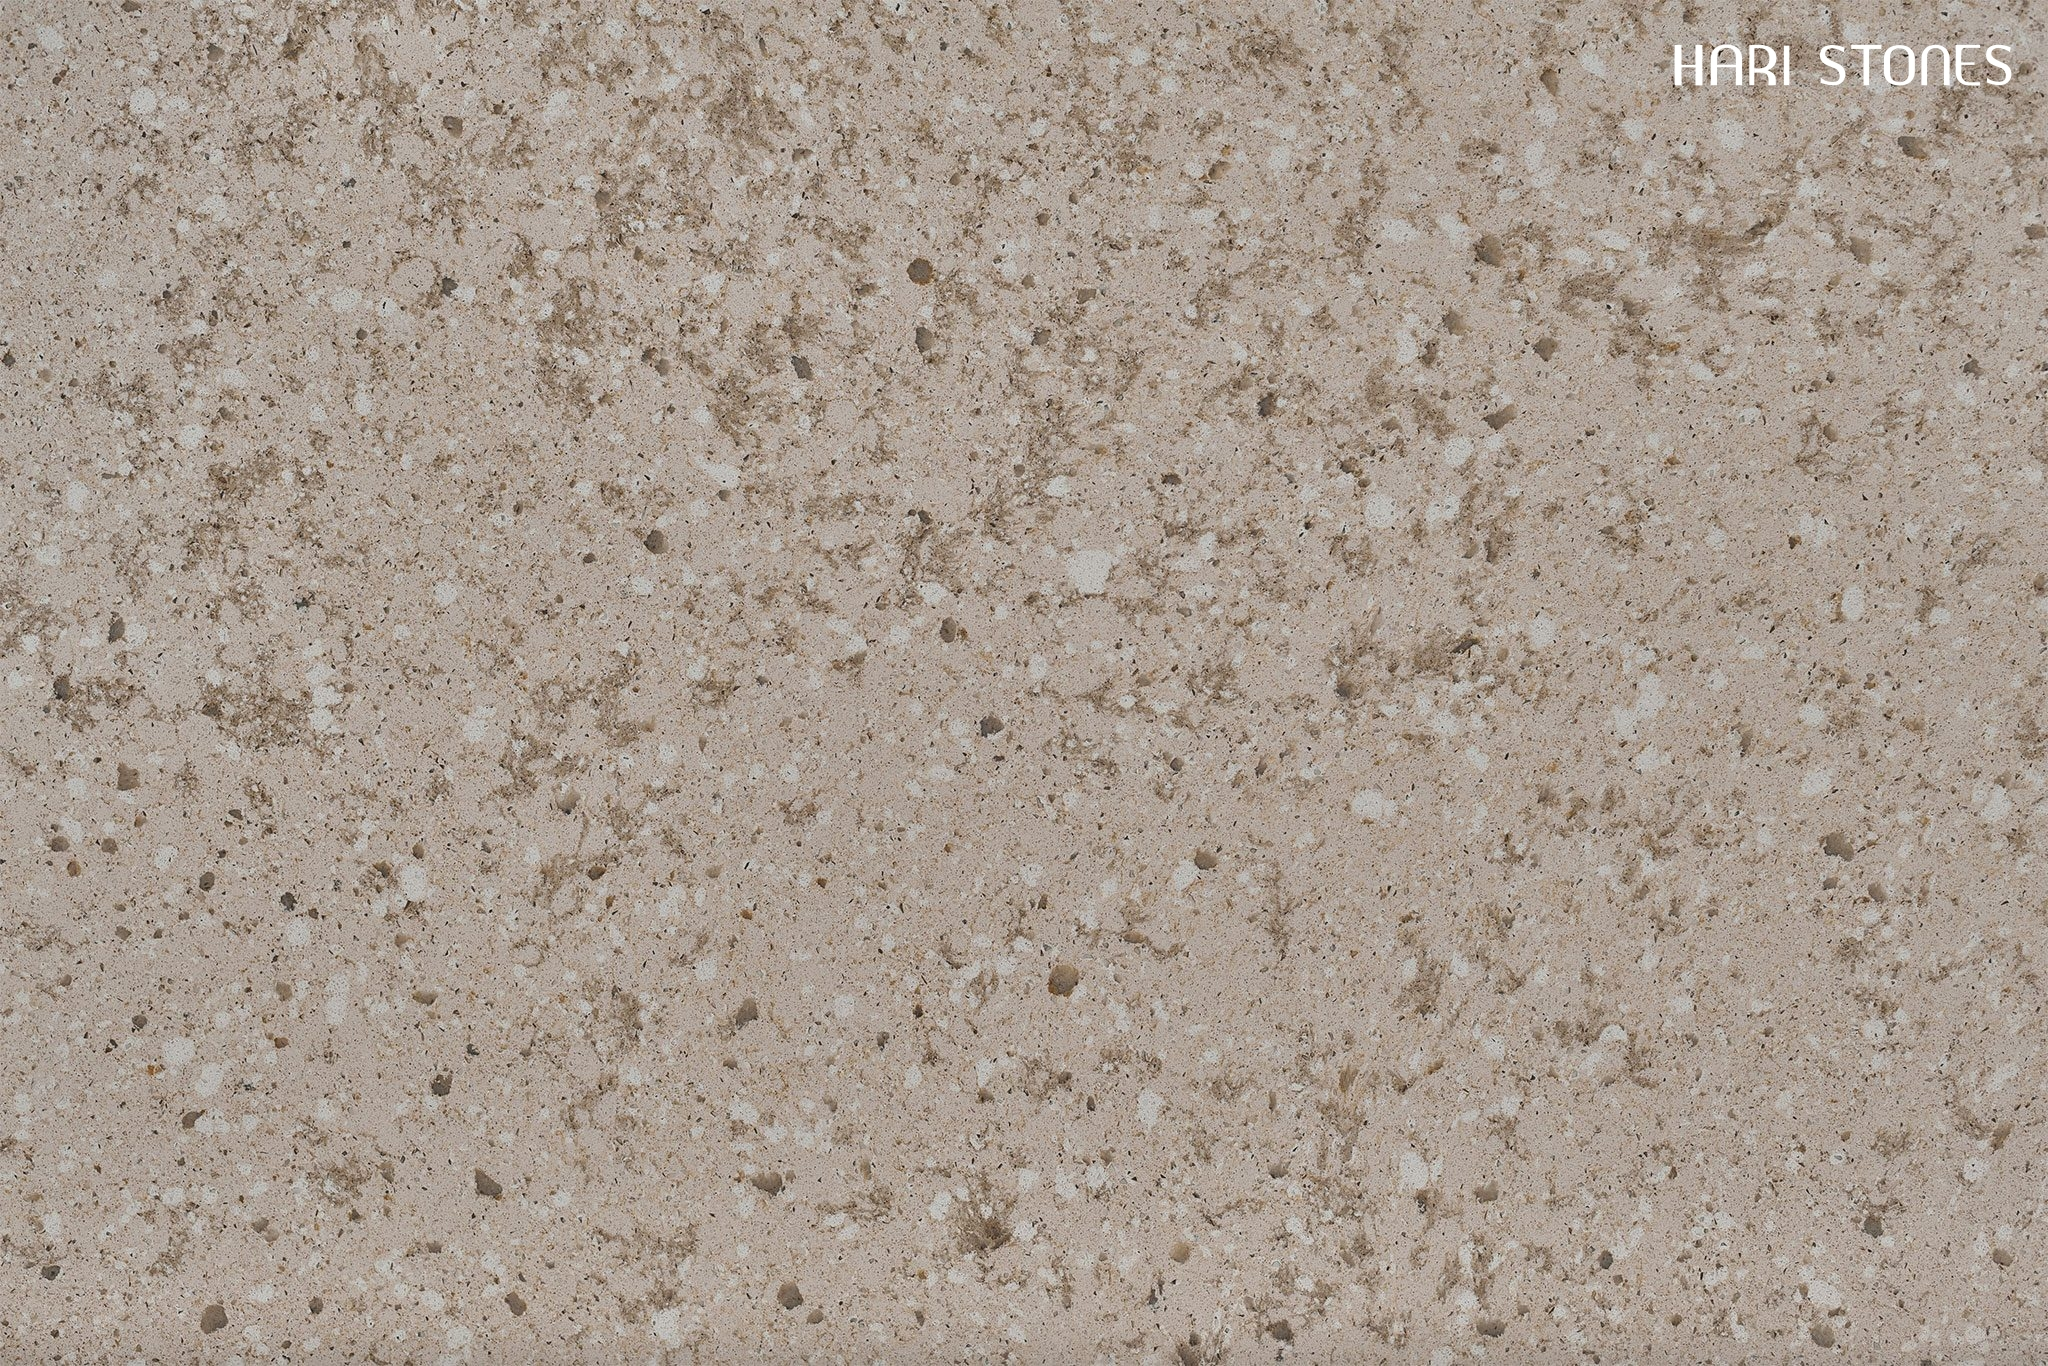 Irah 403 Milva Quartz Slabs Suppliers and Distributors